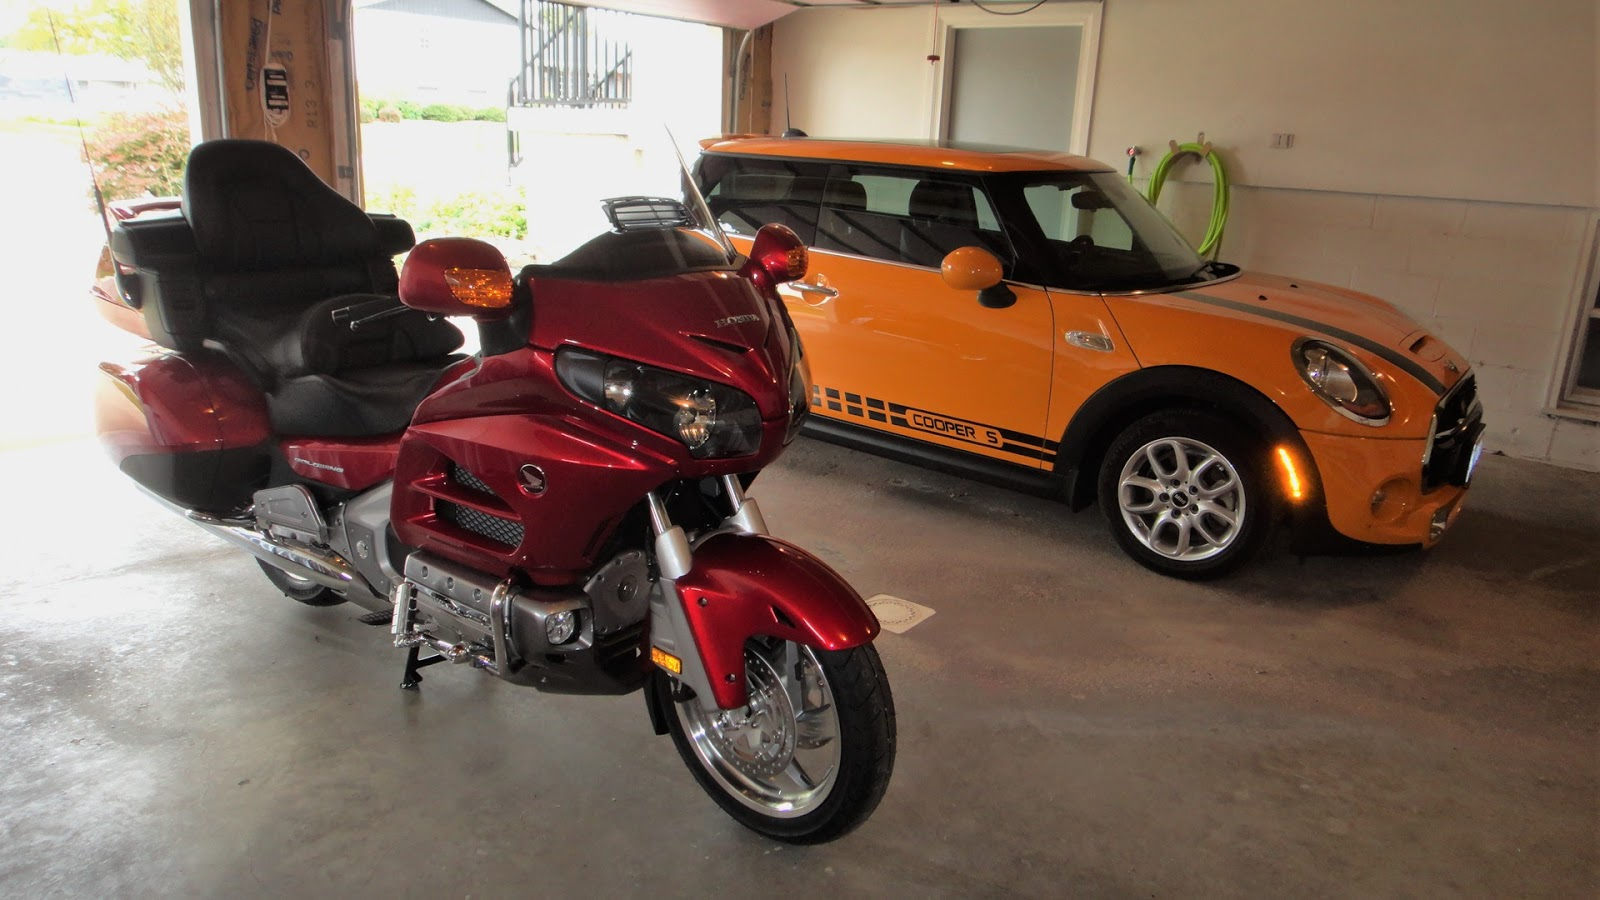 medium resolution of here is my latest addition to my garage a pretty terrific pair of vehicles to say the least but to the point of this post is the gps that i have been